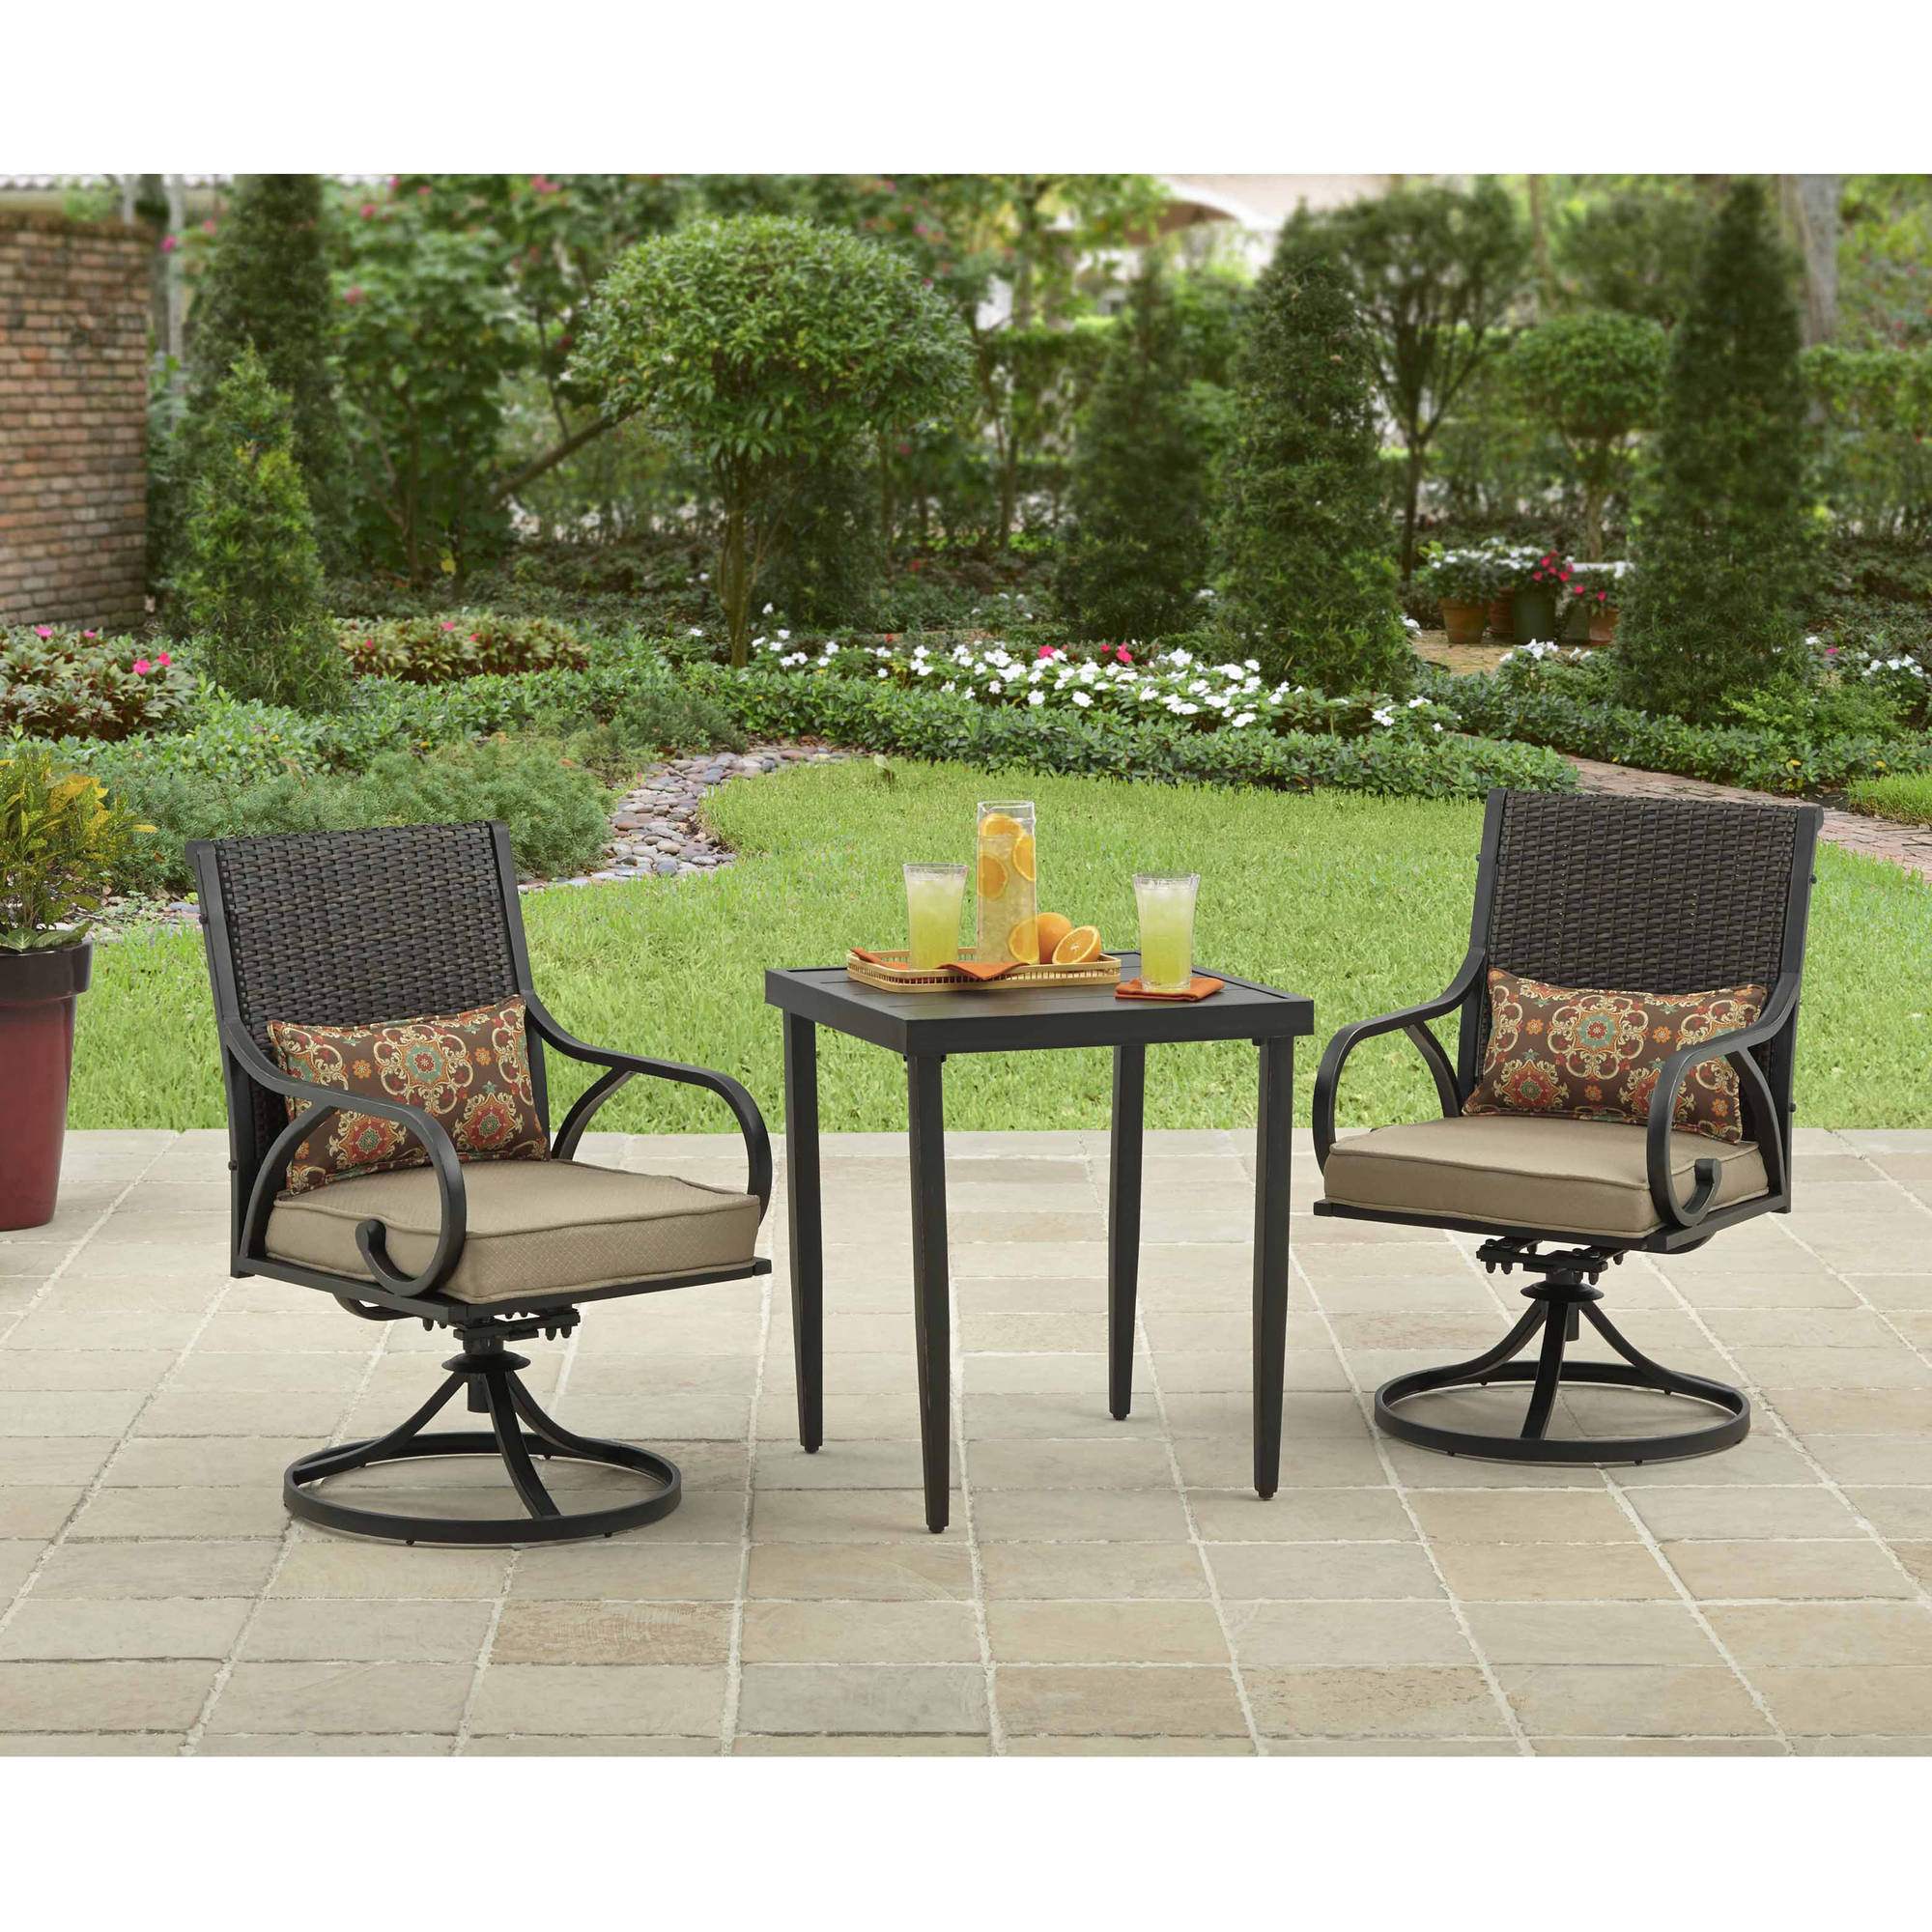 Superbe Better Homes And Gardens Layton Ridge 3 Piece Outdoor Bistro Set